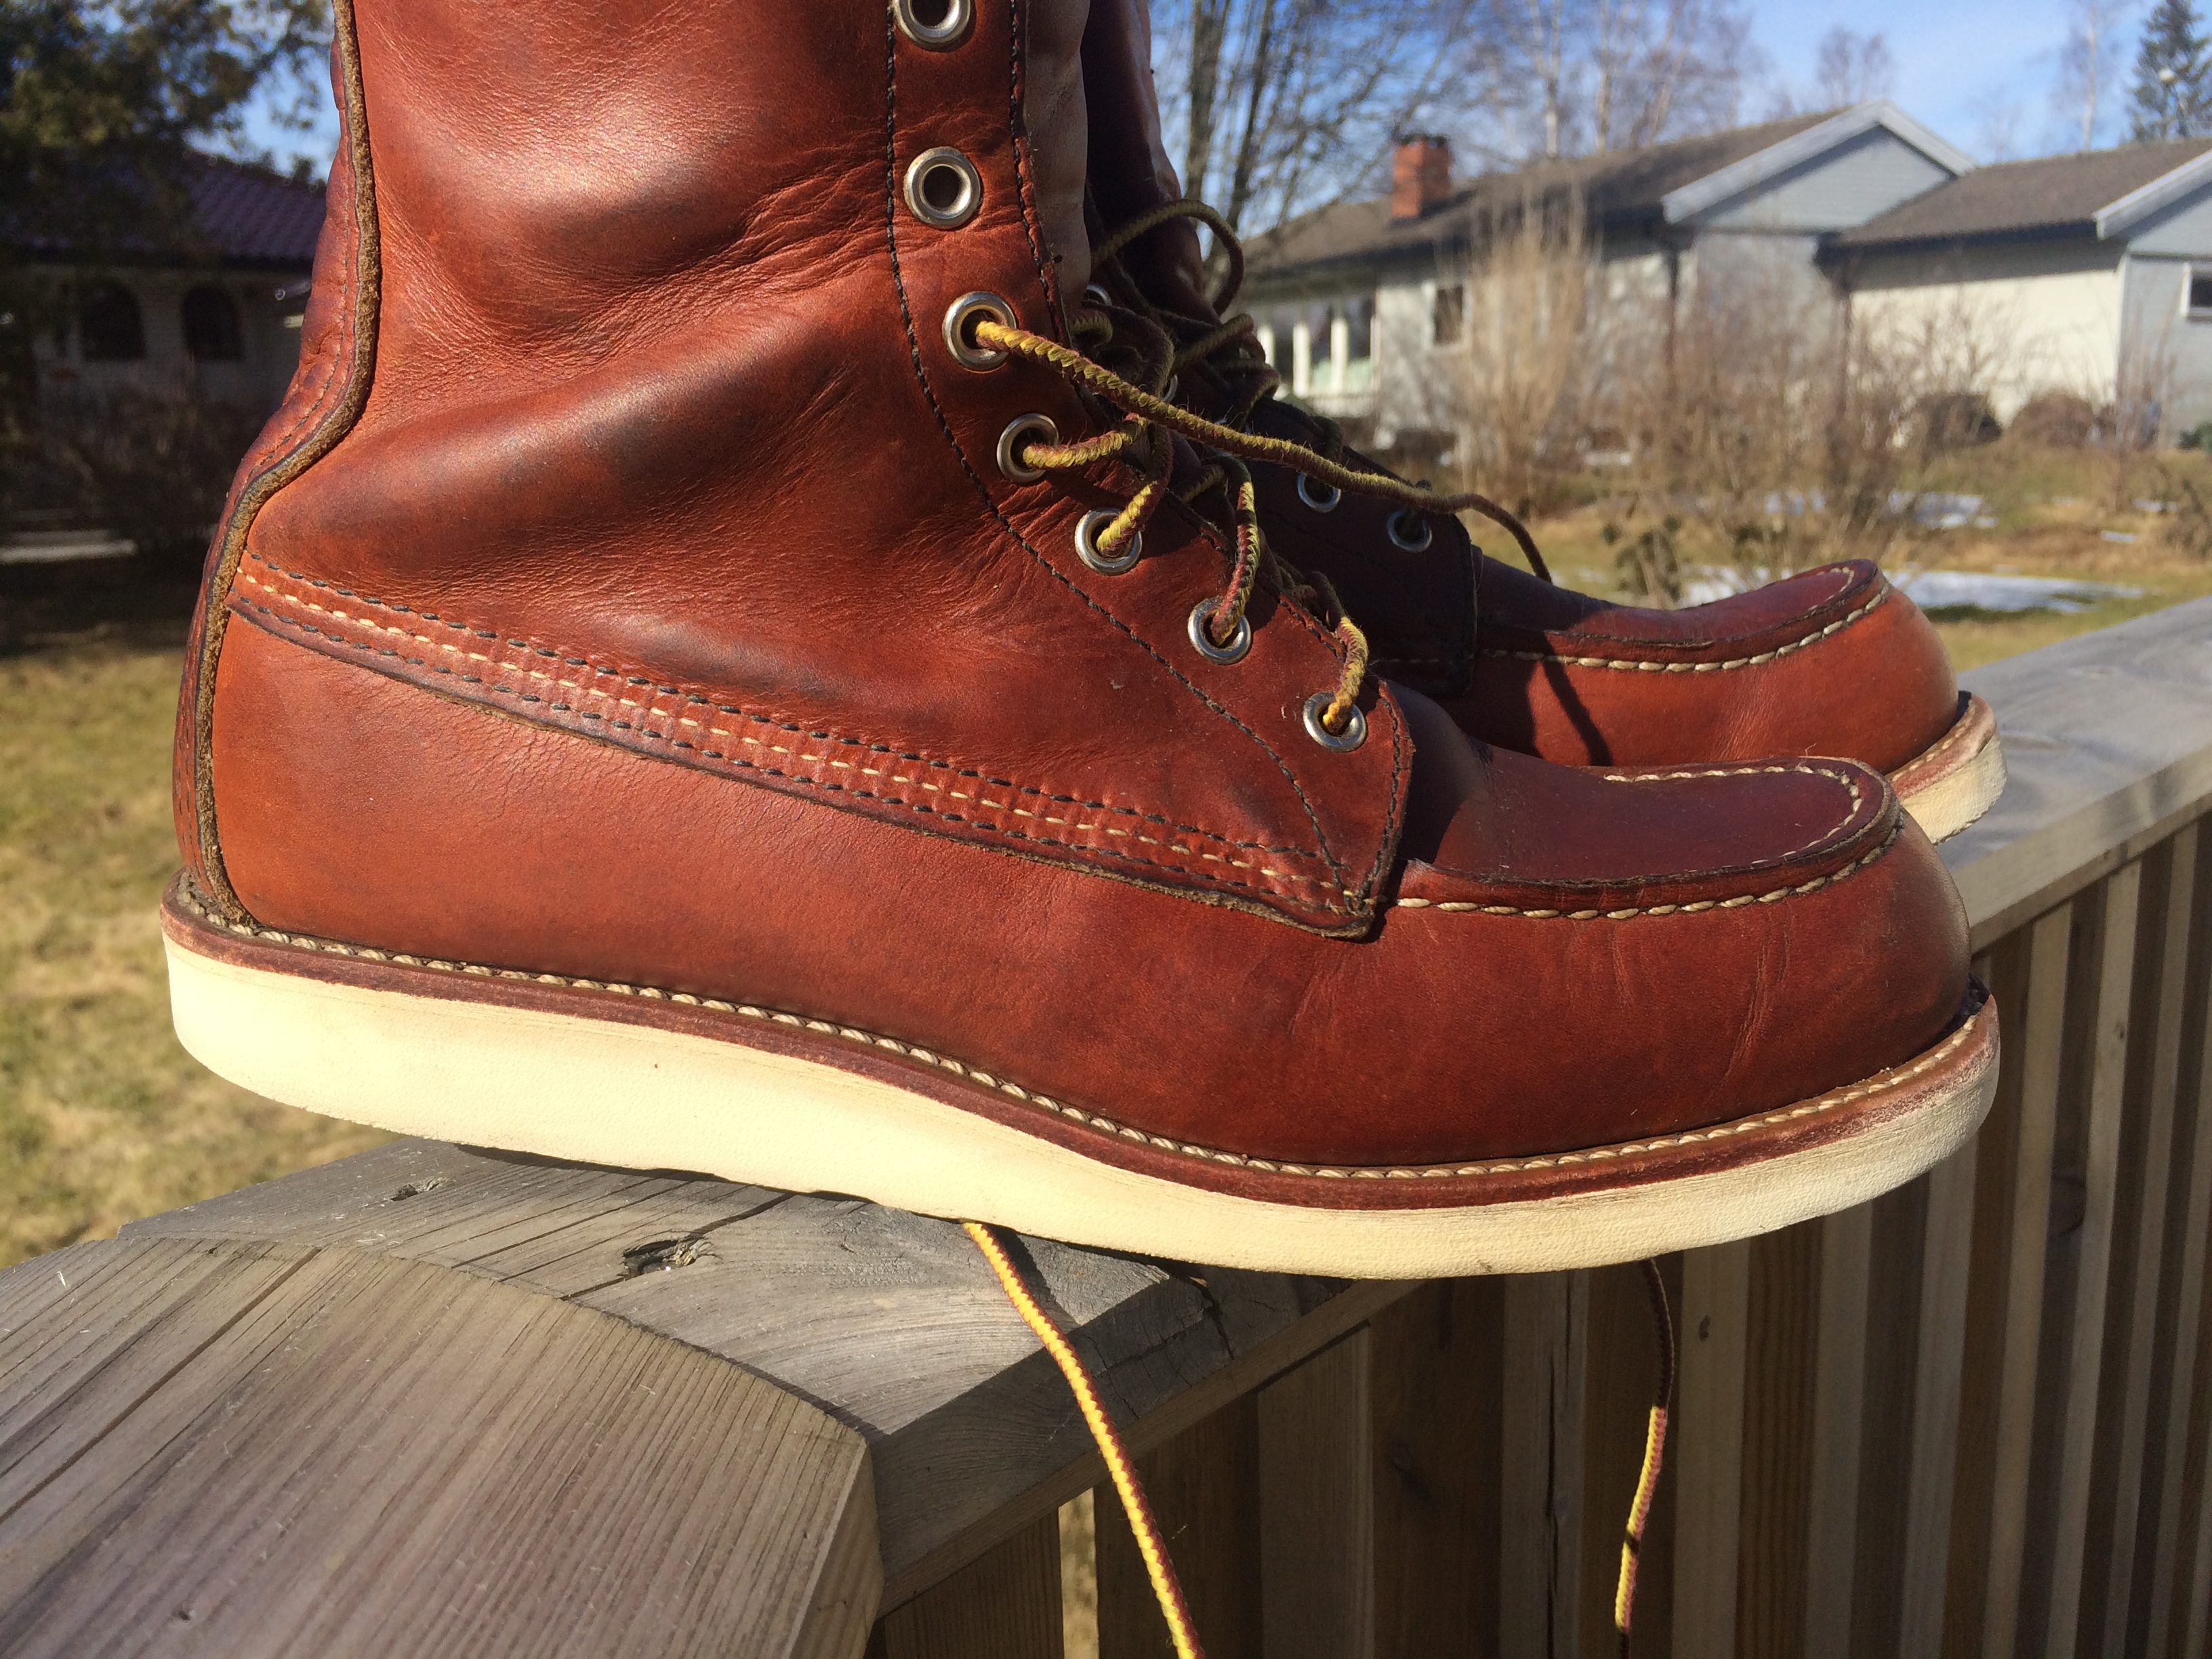 Red Wing Soles keeping Christy soles crispy